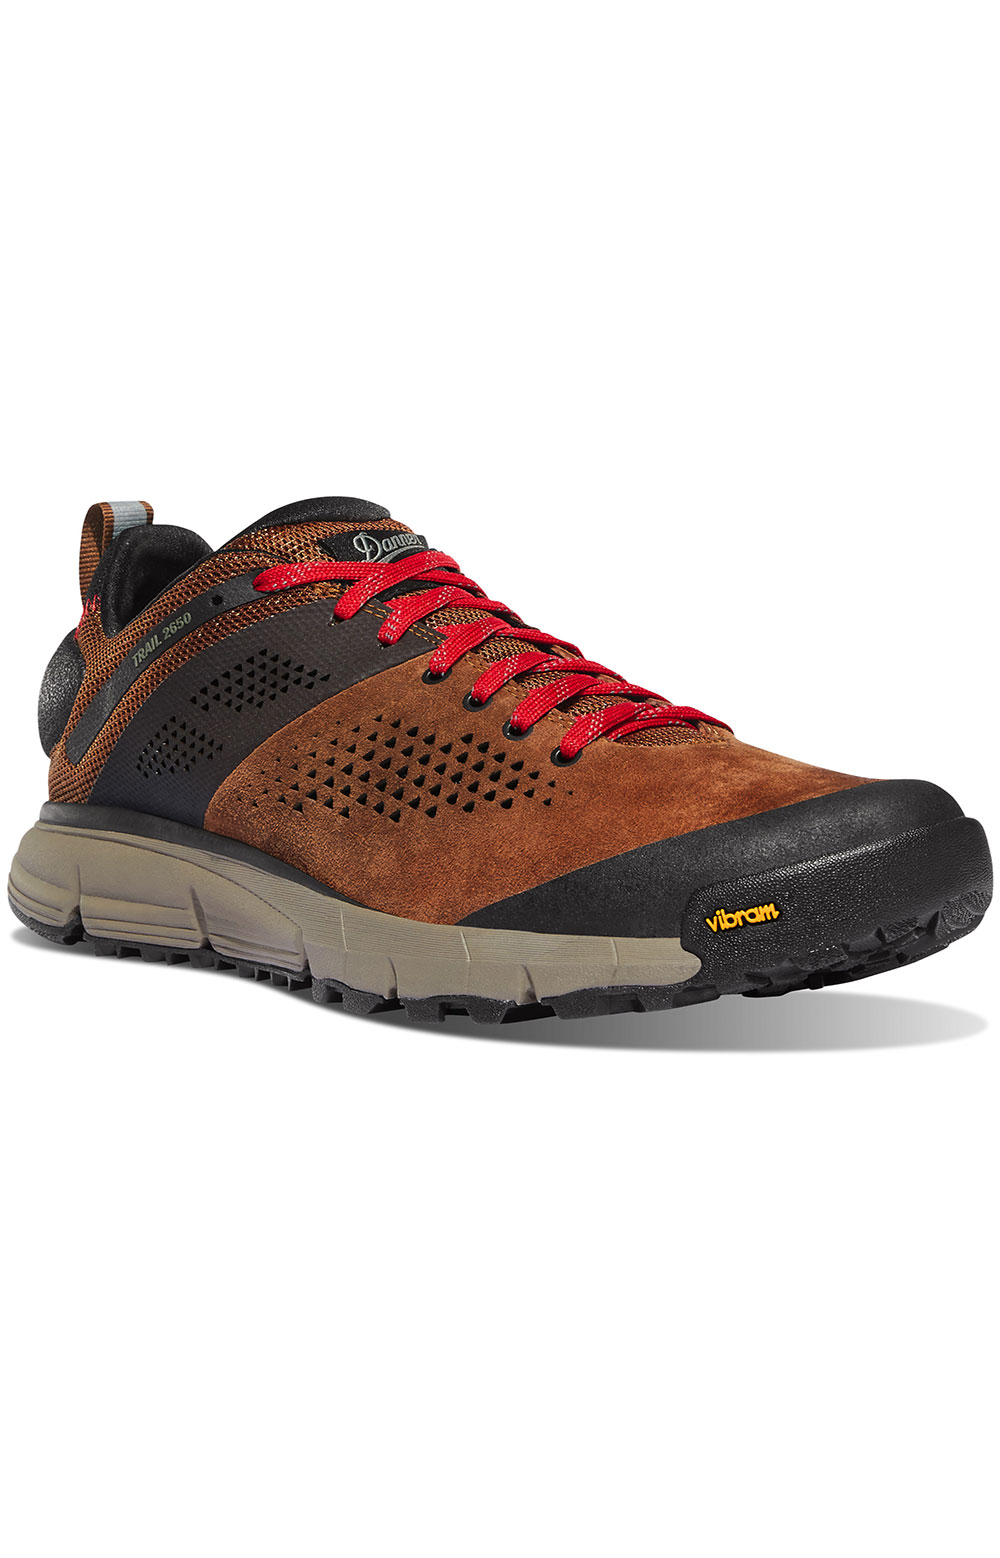 (61272) Trail 2650 Shoes - Brown/Red